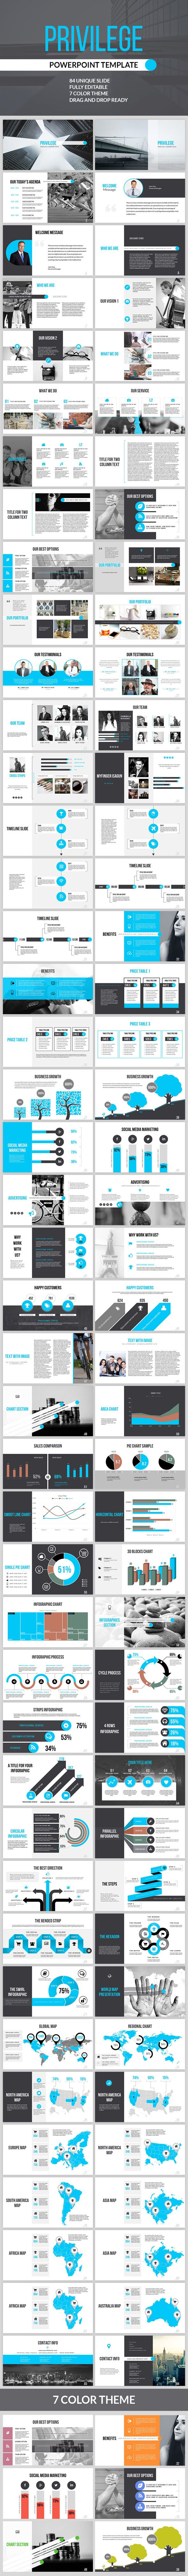 best 25+ presentation templates ideas on pinterest | power point, Presentation templates